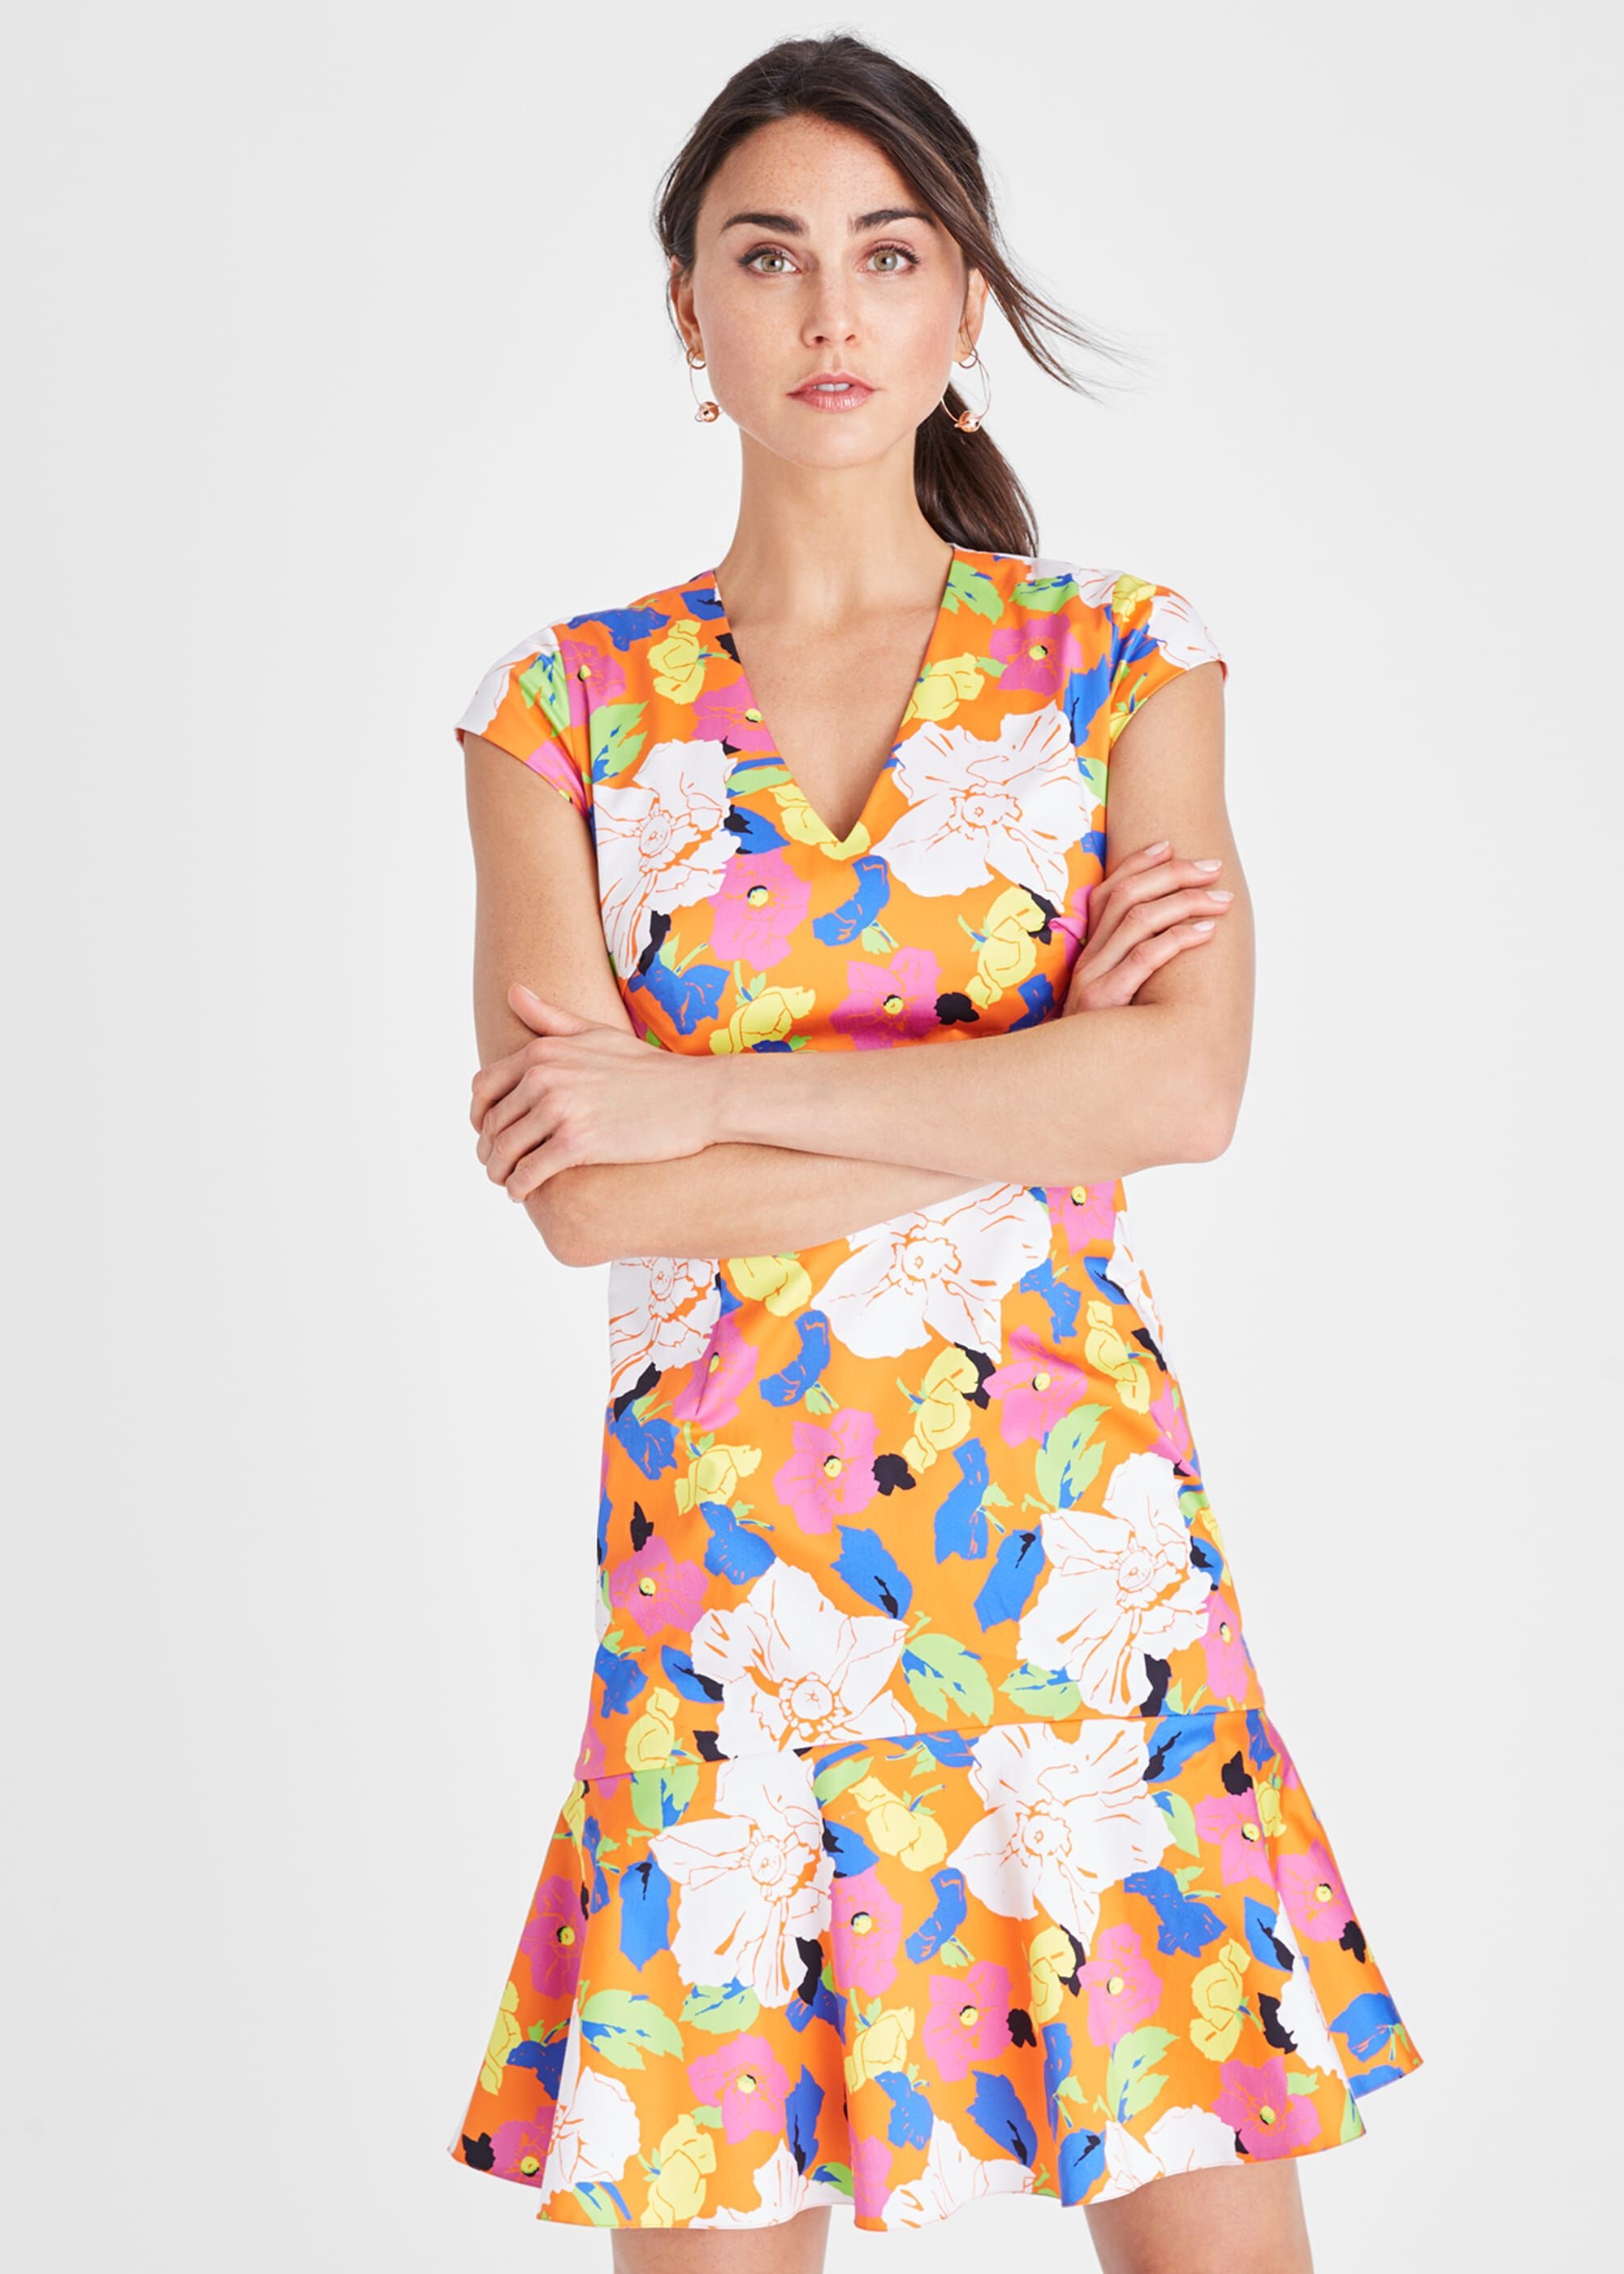 Damsel in a Dress Sietta Floral Dress, Multicoloured, Occasion Dress